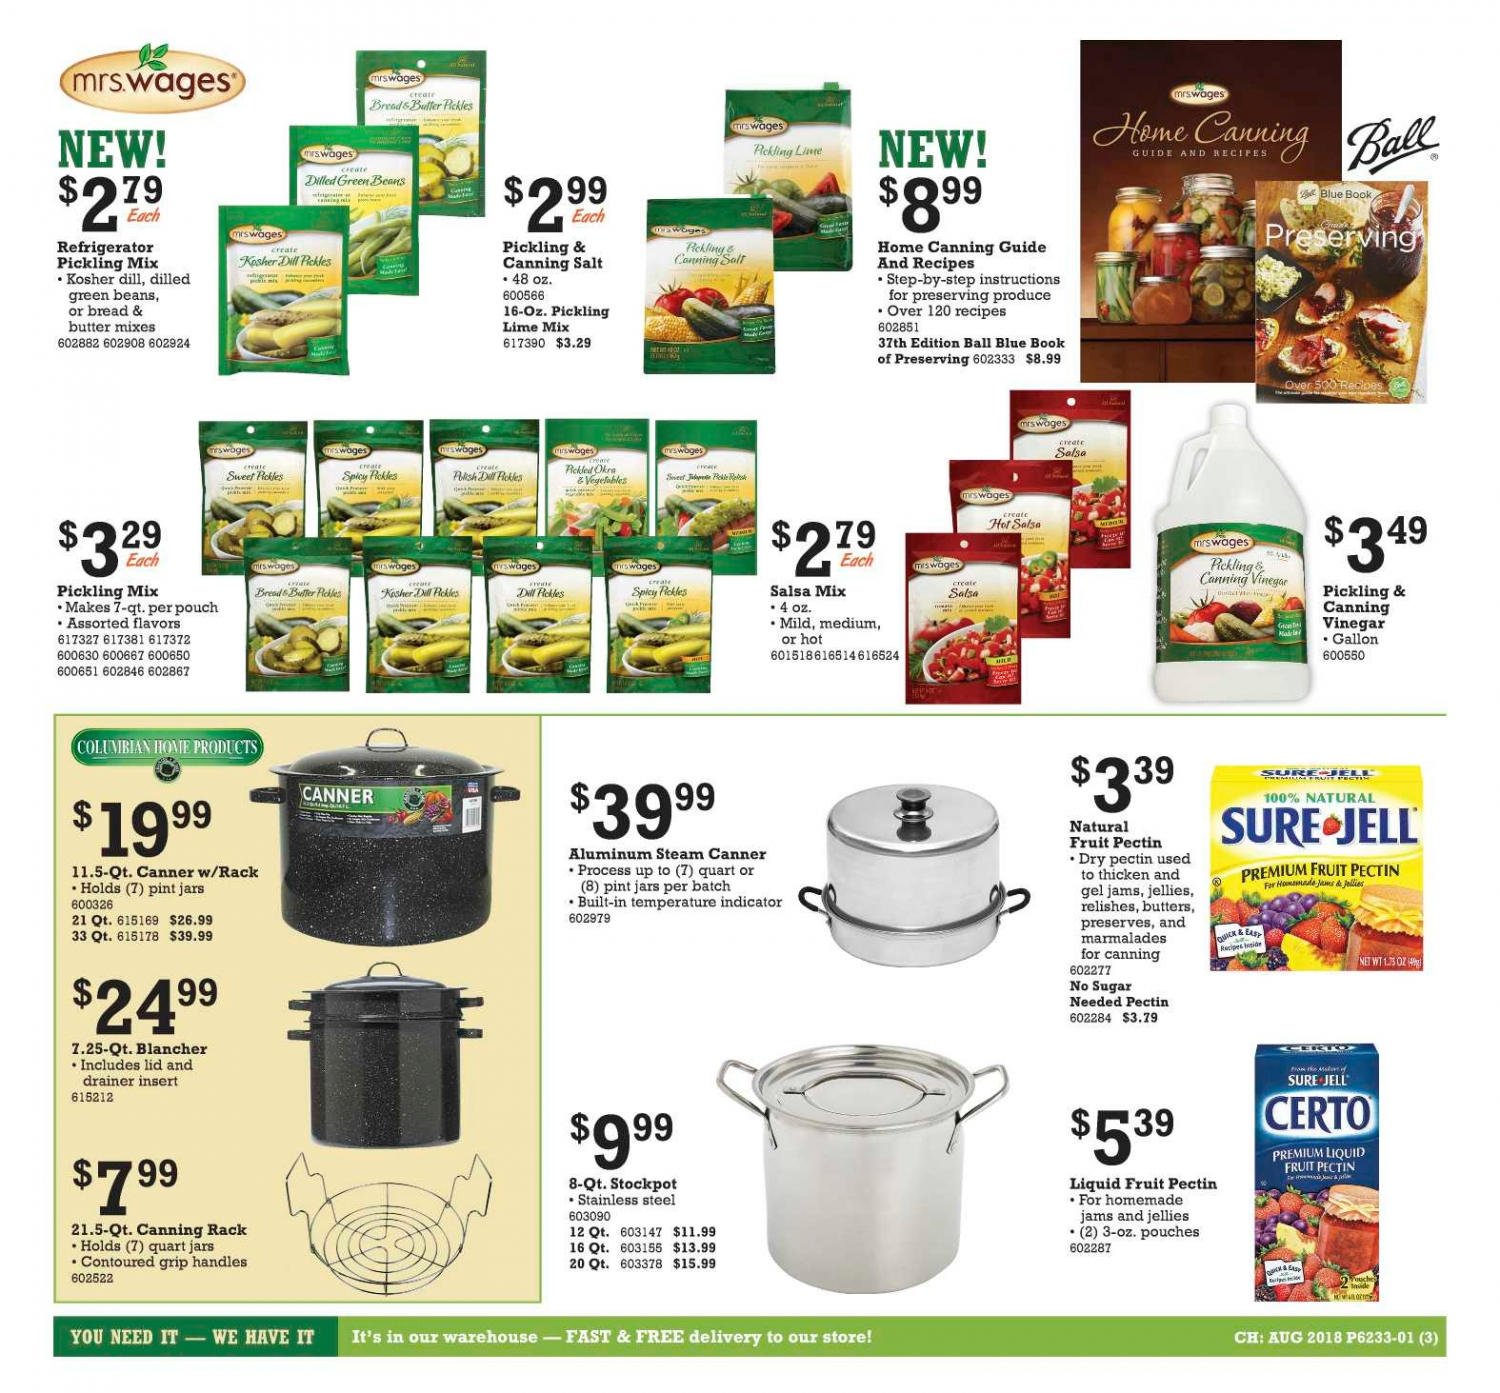 Canning items on sale